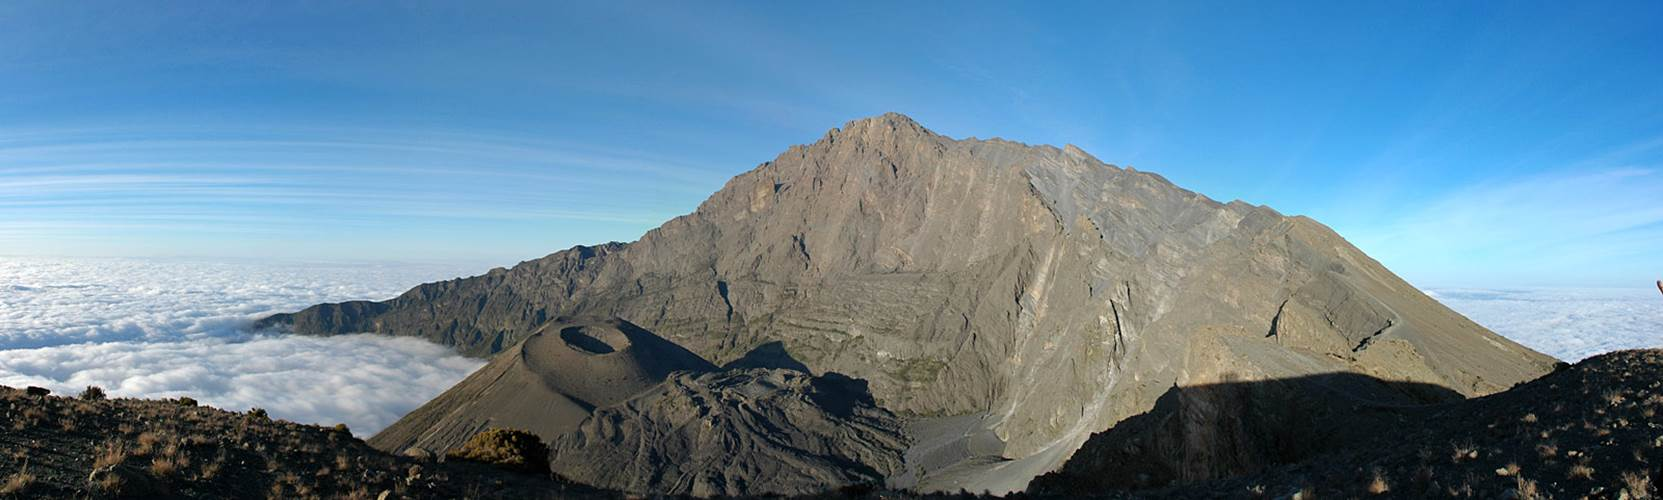 Mount Meru summit massif